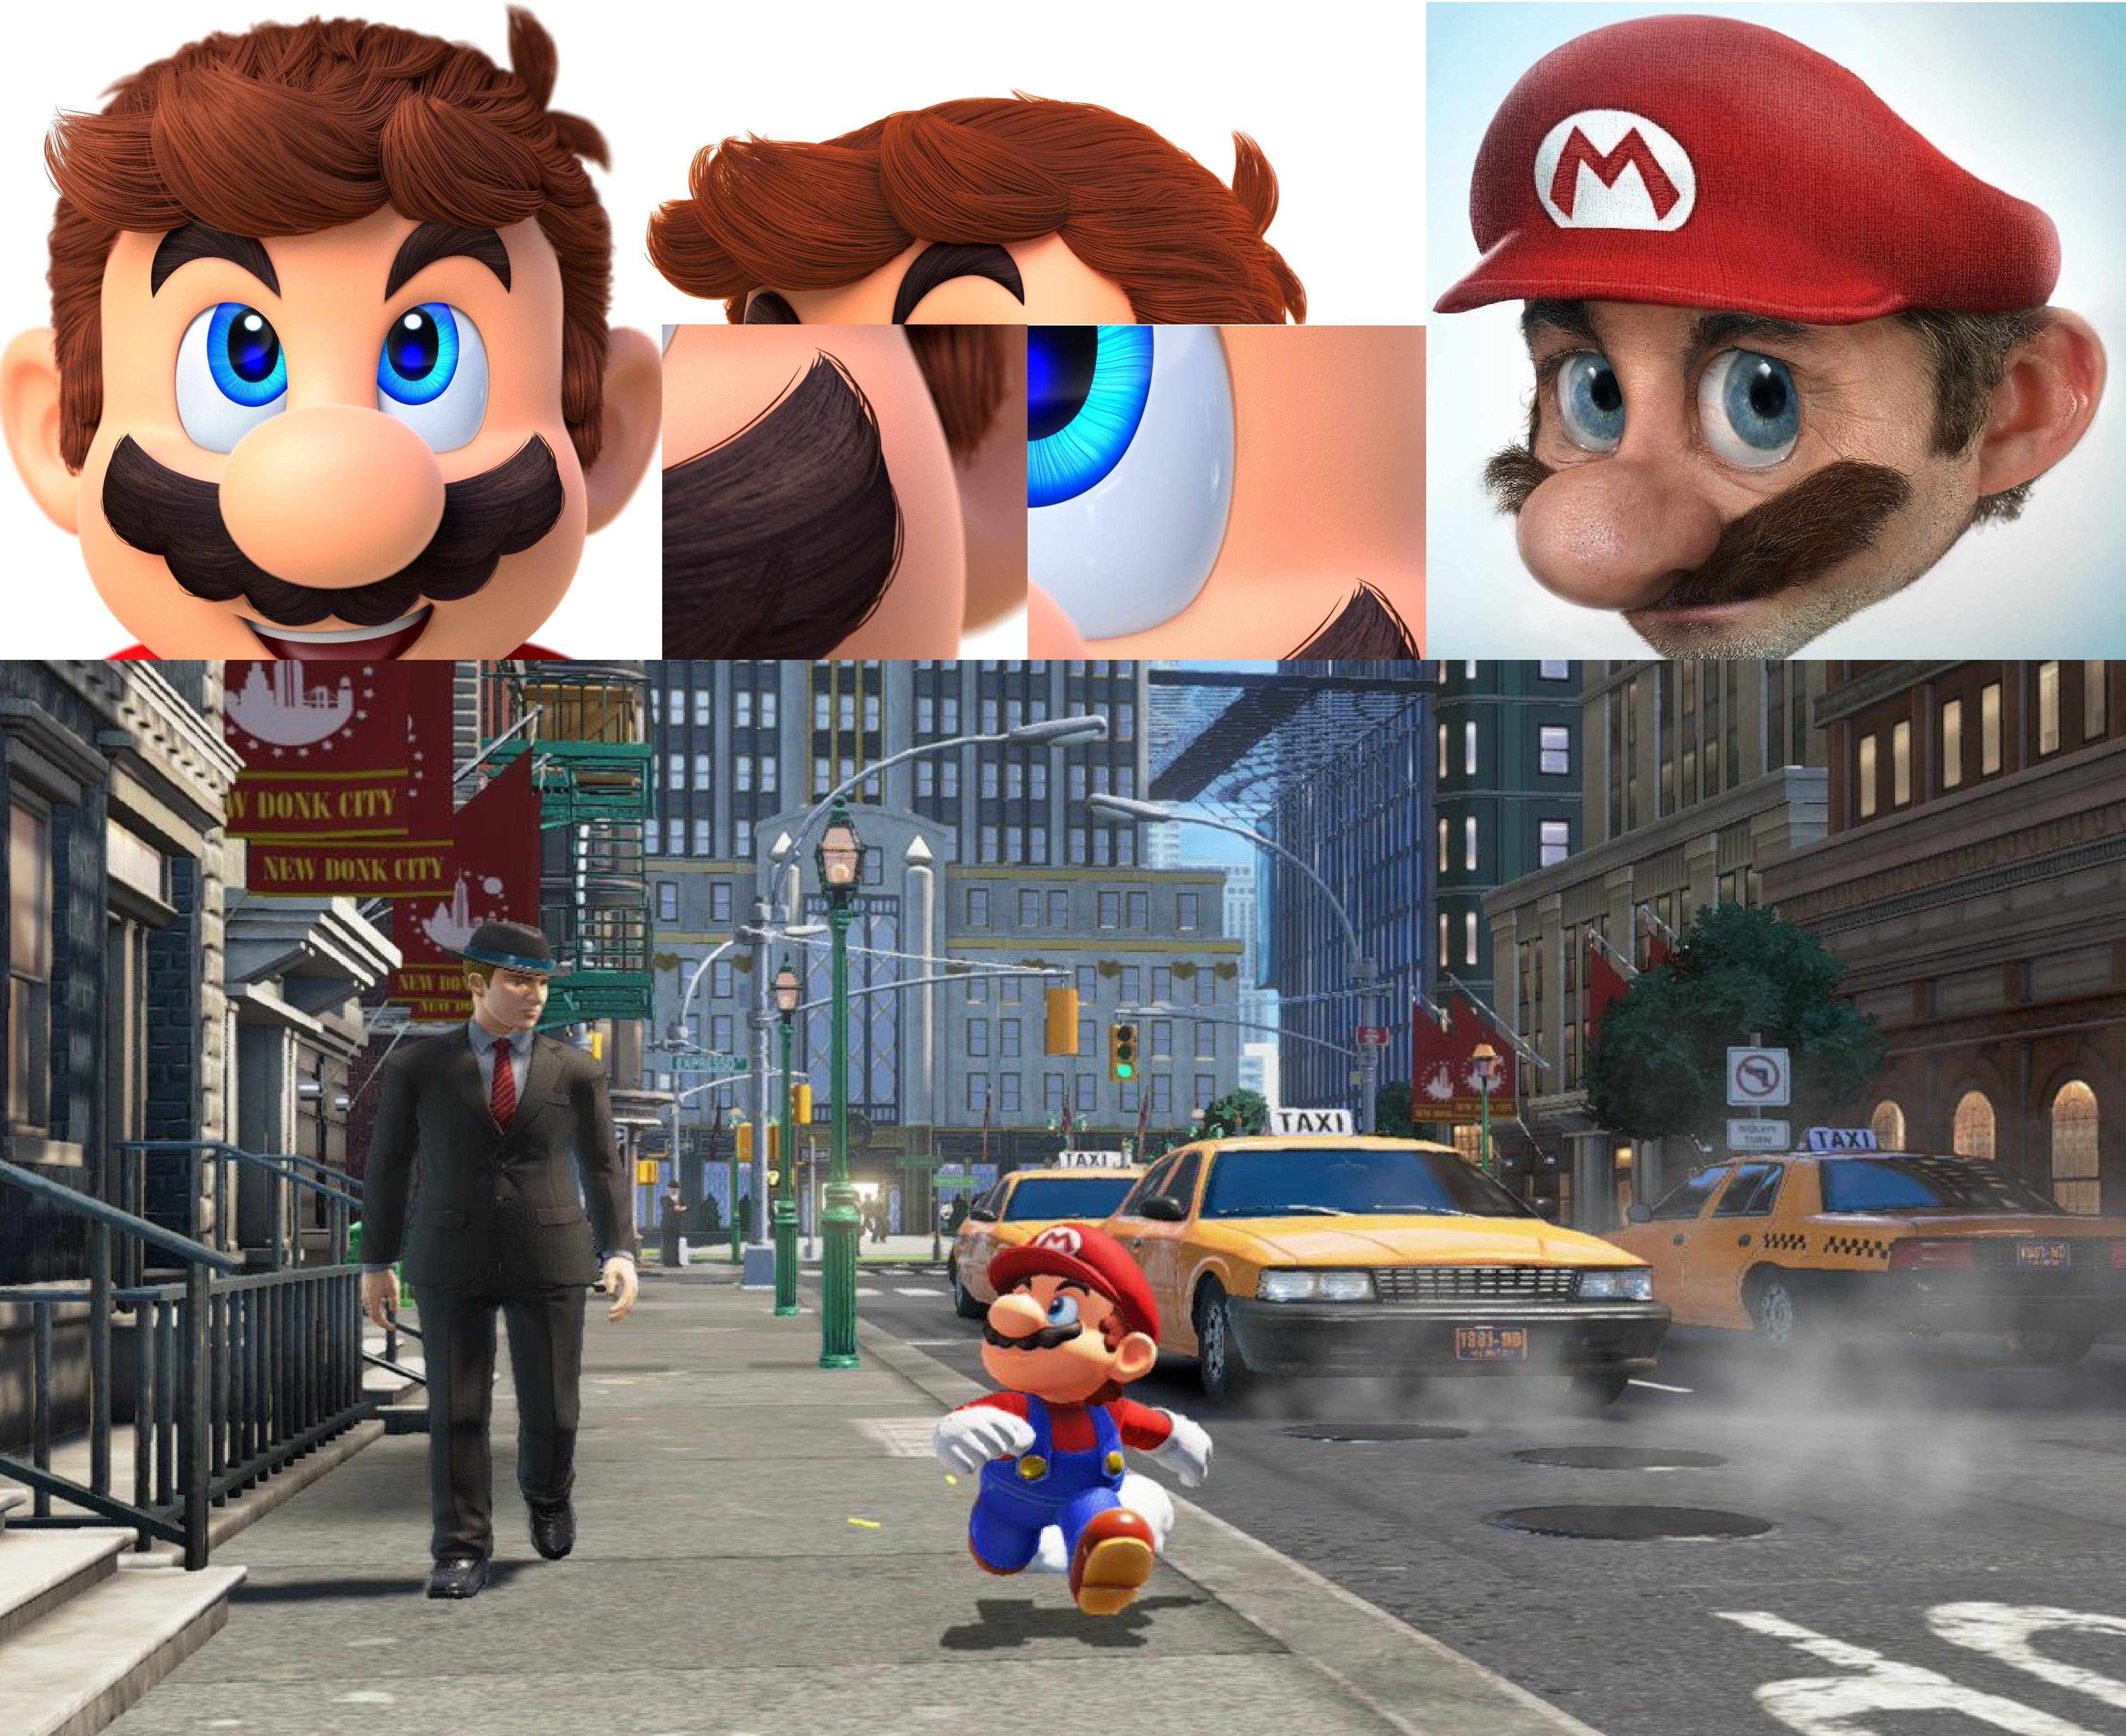 the oddyssey in popular culture The cap-trick ever since karen became the life of the rooftop party a year ago, nintendo's first ever glimpse of what would now be known as super mario odyssey was shown to salivating fans everywhere during a three minute reveal trailer what wasn't known at the time, is that in the surprisingly few.